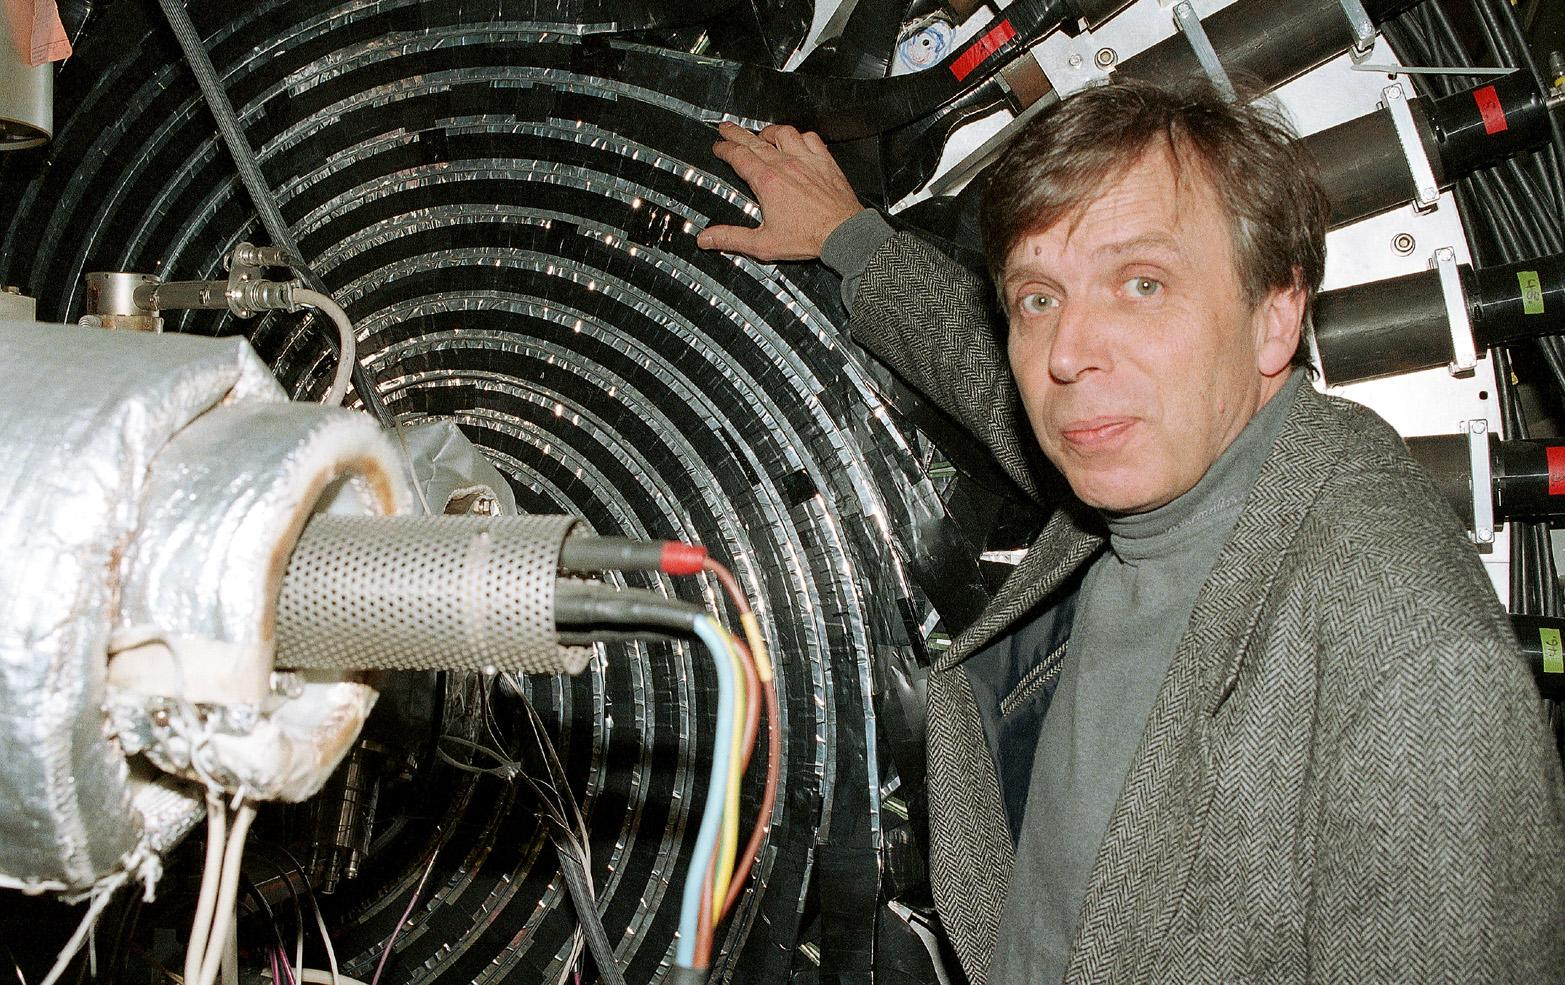 Professor Walter Oelert, leader of the team which created the first atoms of antihydrogen at the Low Energy Antiproton Ring (LEAR) in January 1996